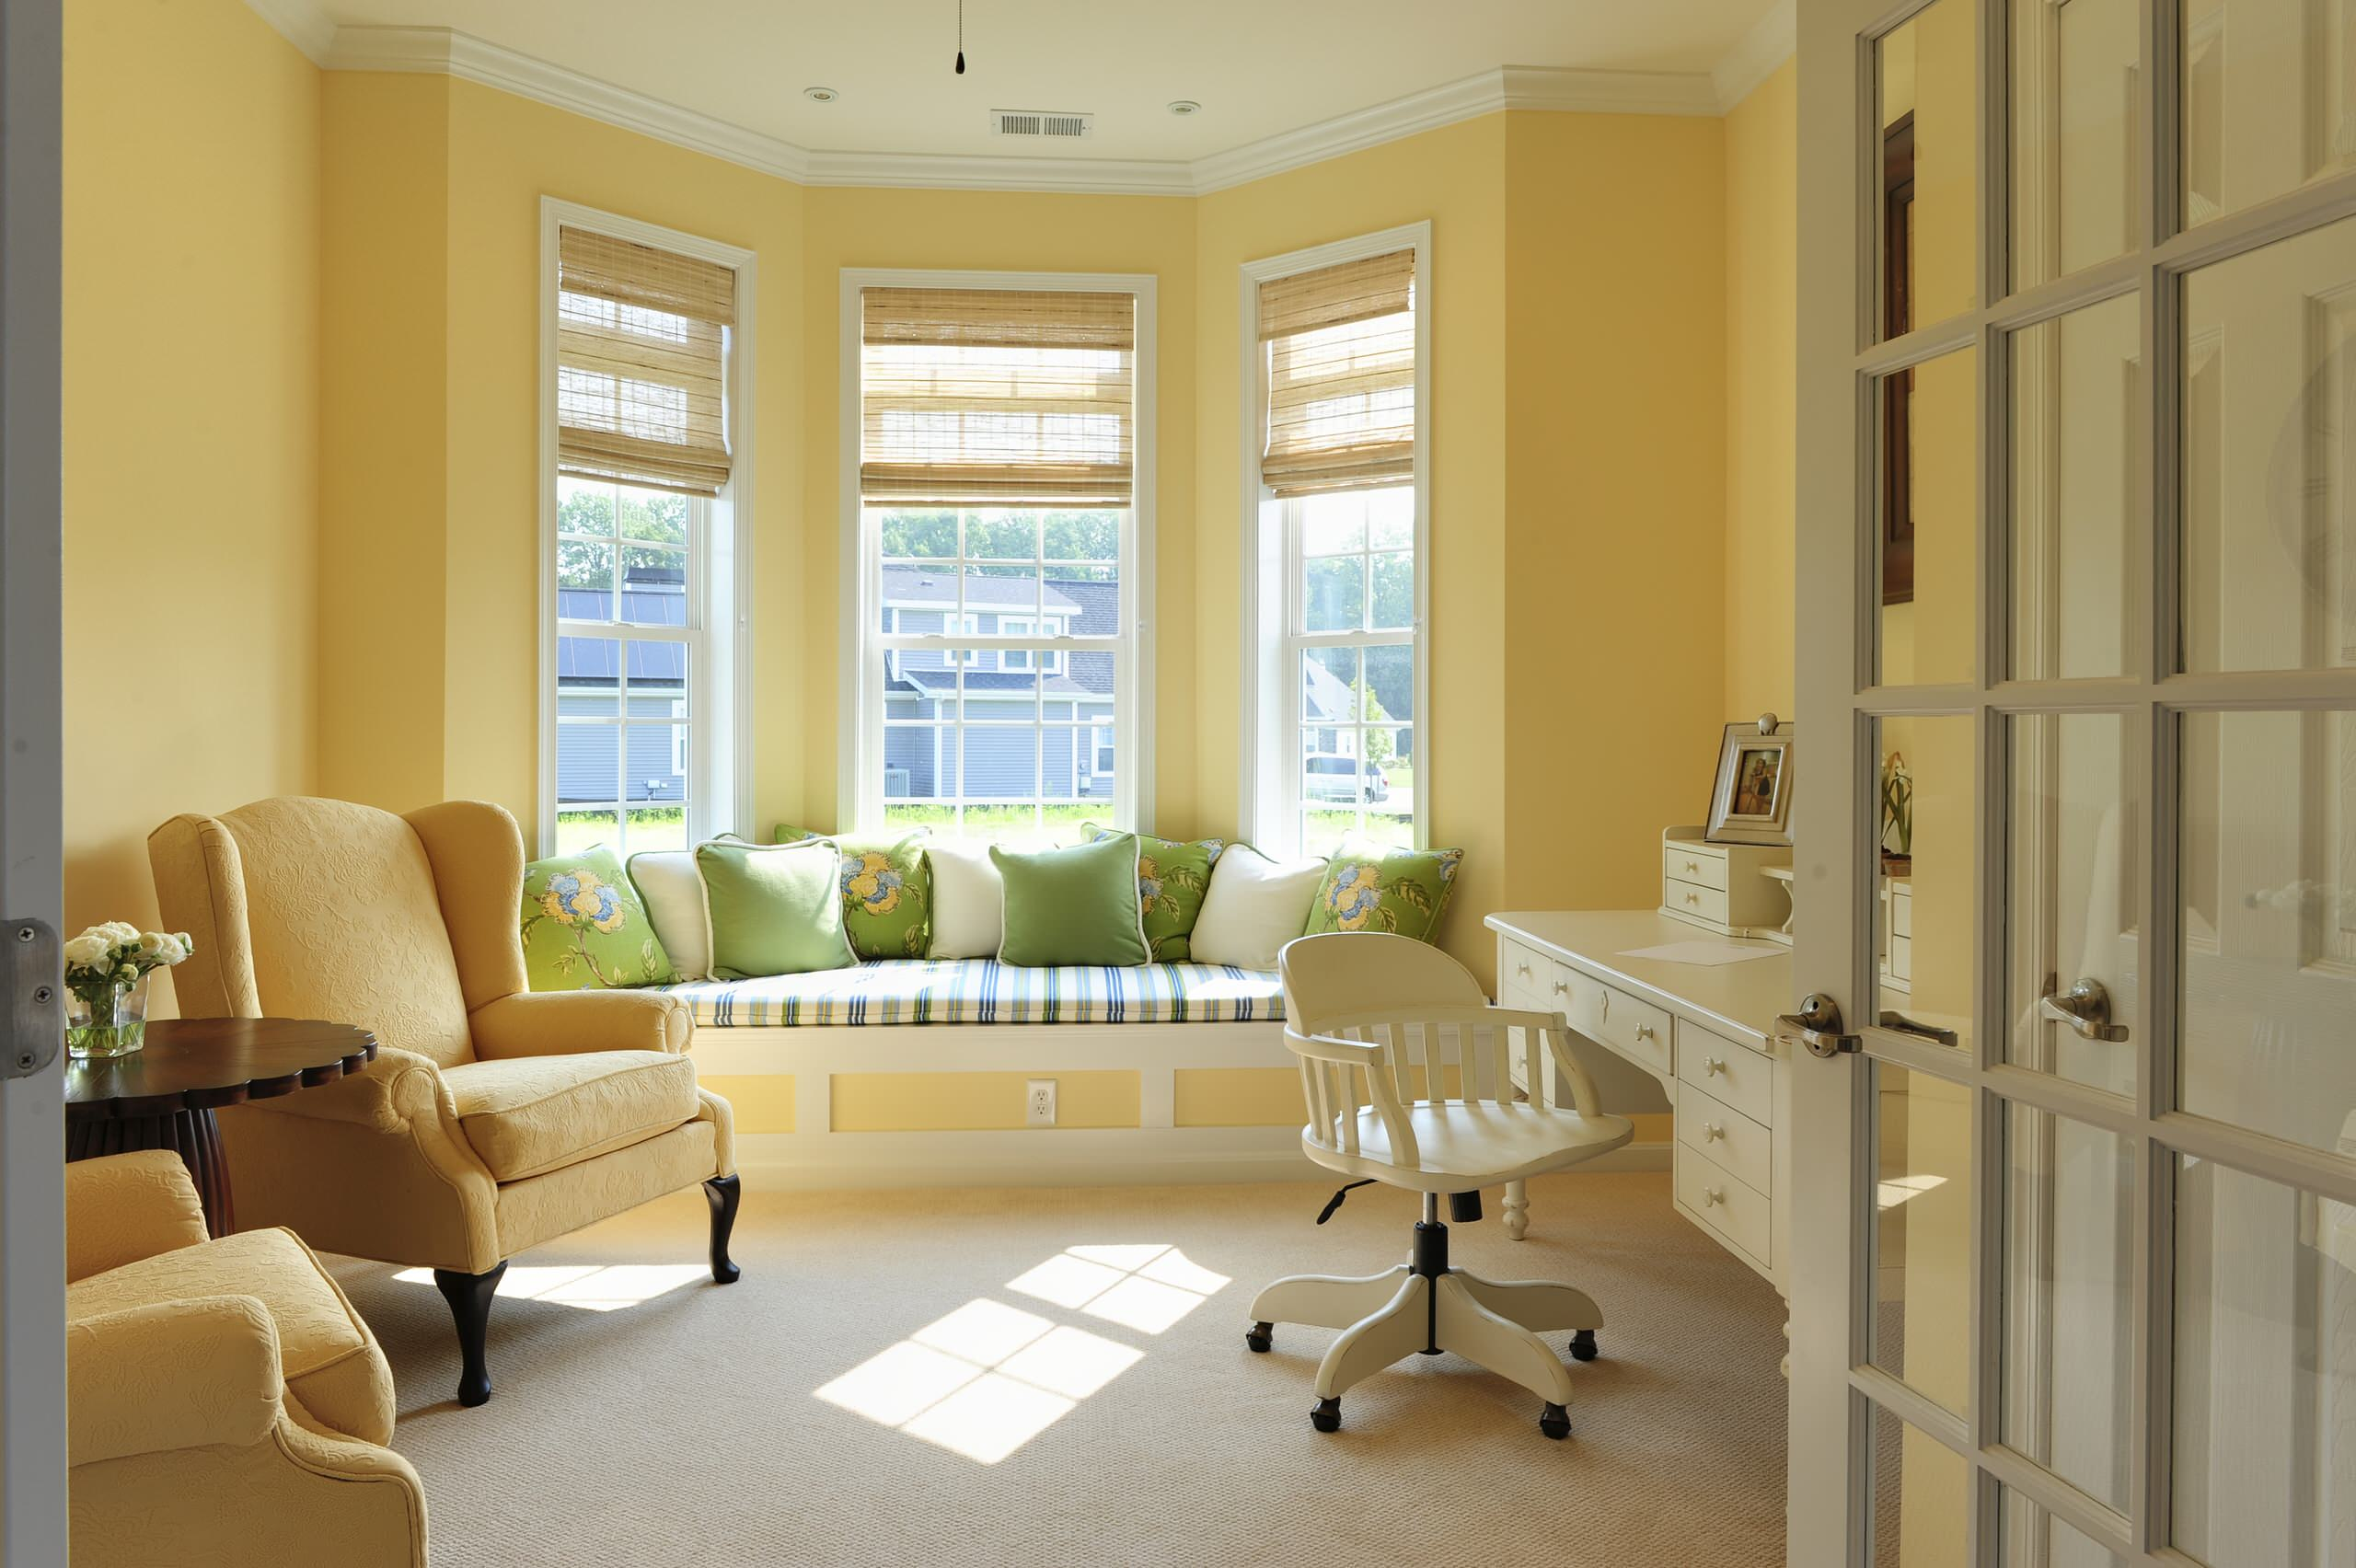 Exciting Bay Window Seat For Interior Home Design Berber Carpet With Mid Century Armchairs And